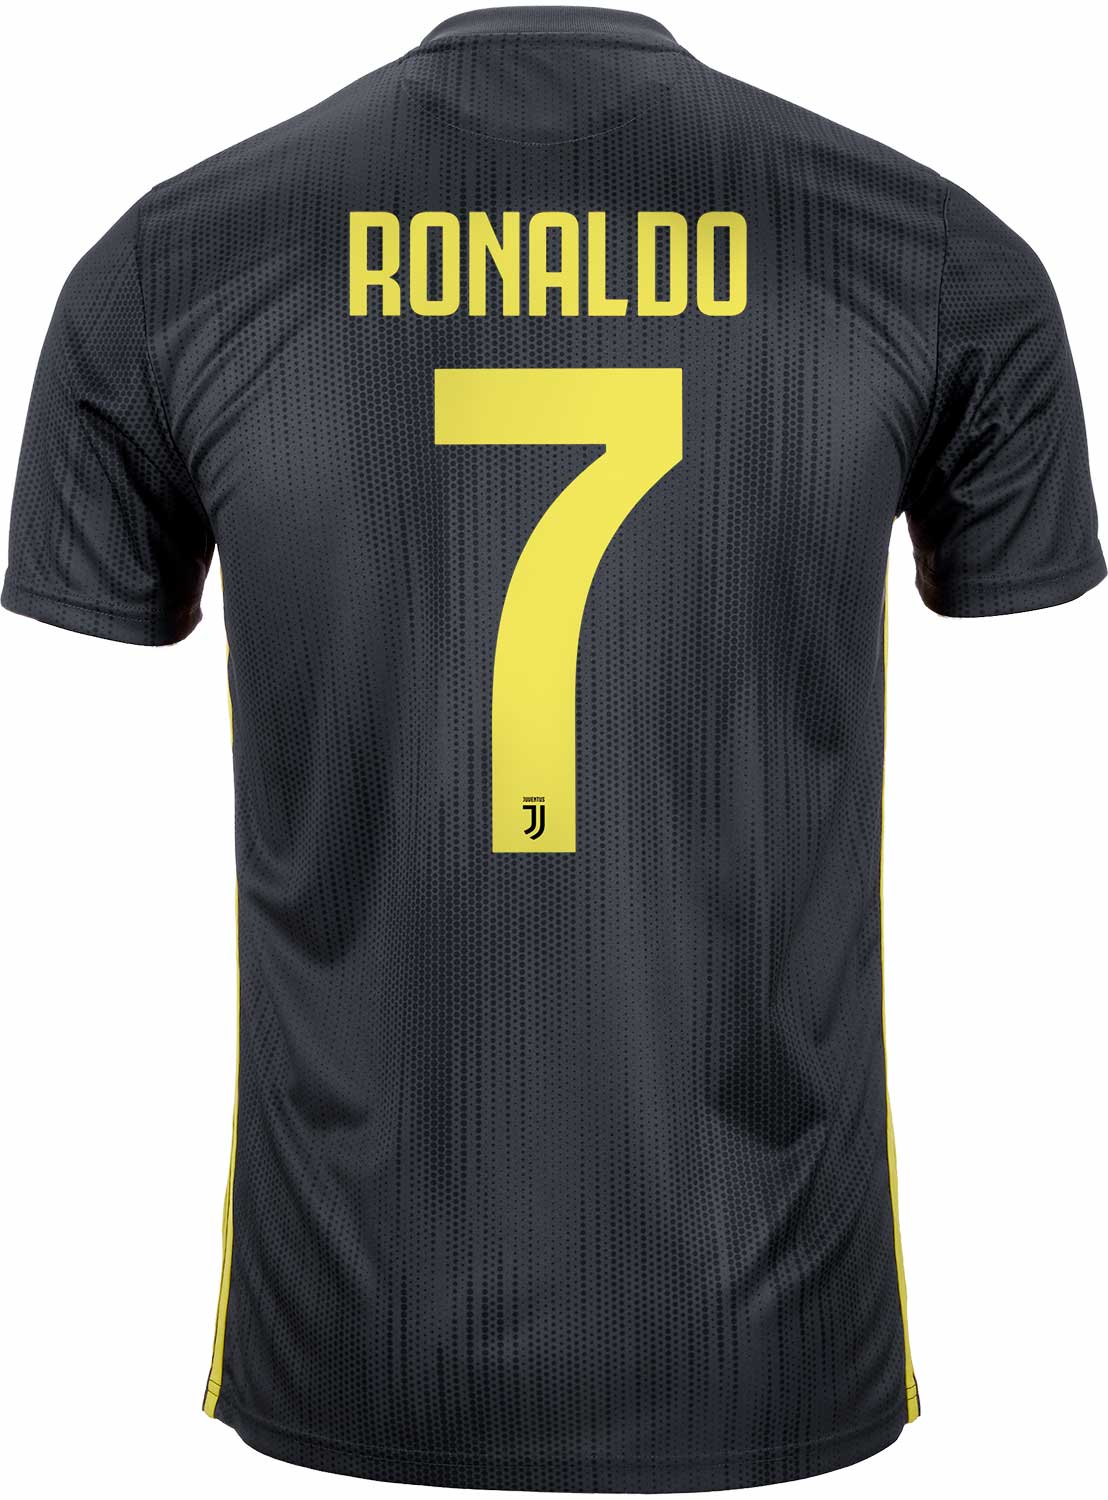 new products 91a5d 760d7 2018/19 adidas Cristiano Ronaldo Juventus 3rd Jersey - SoccerPro